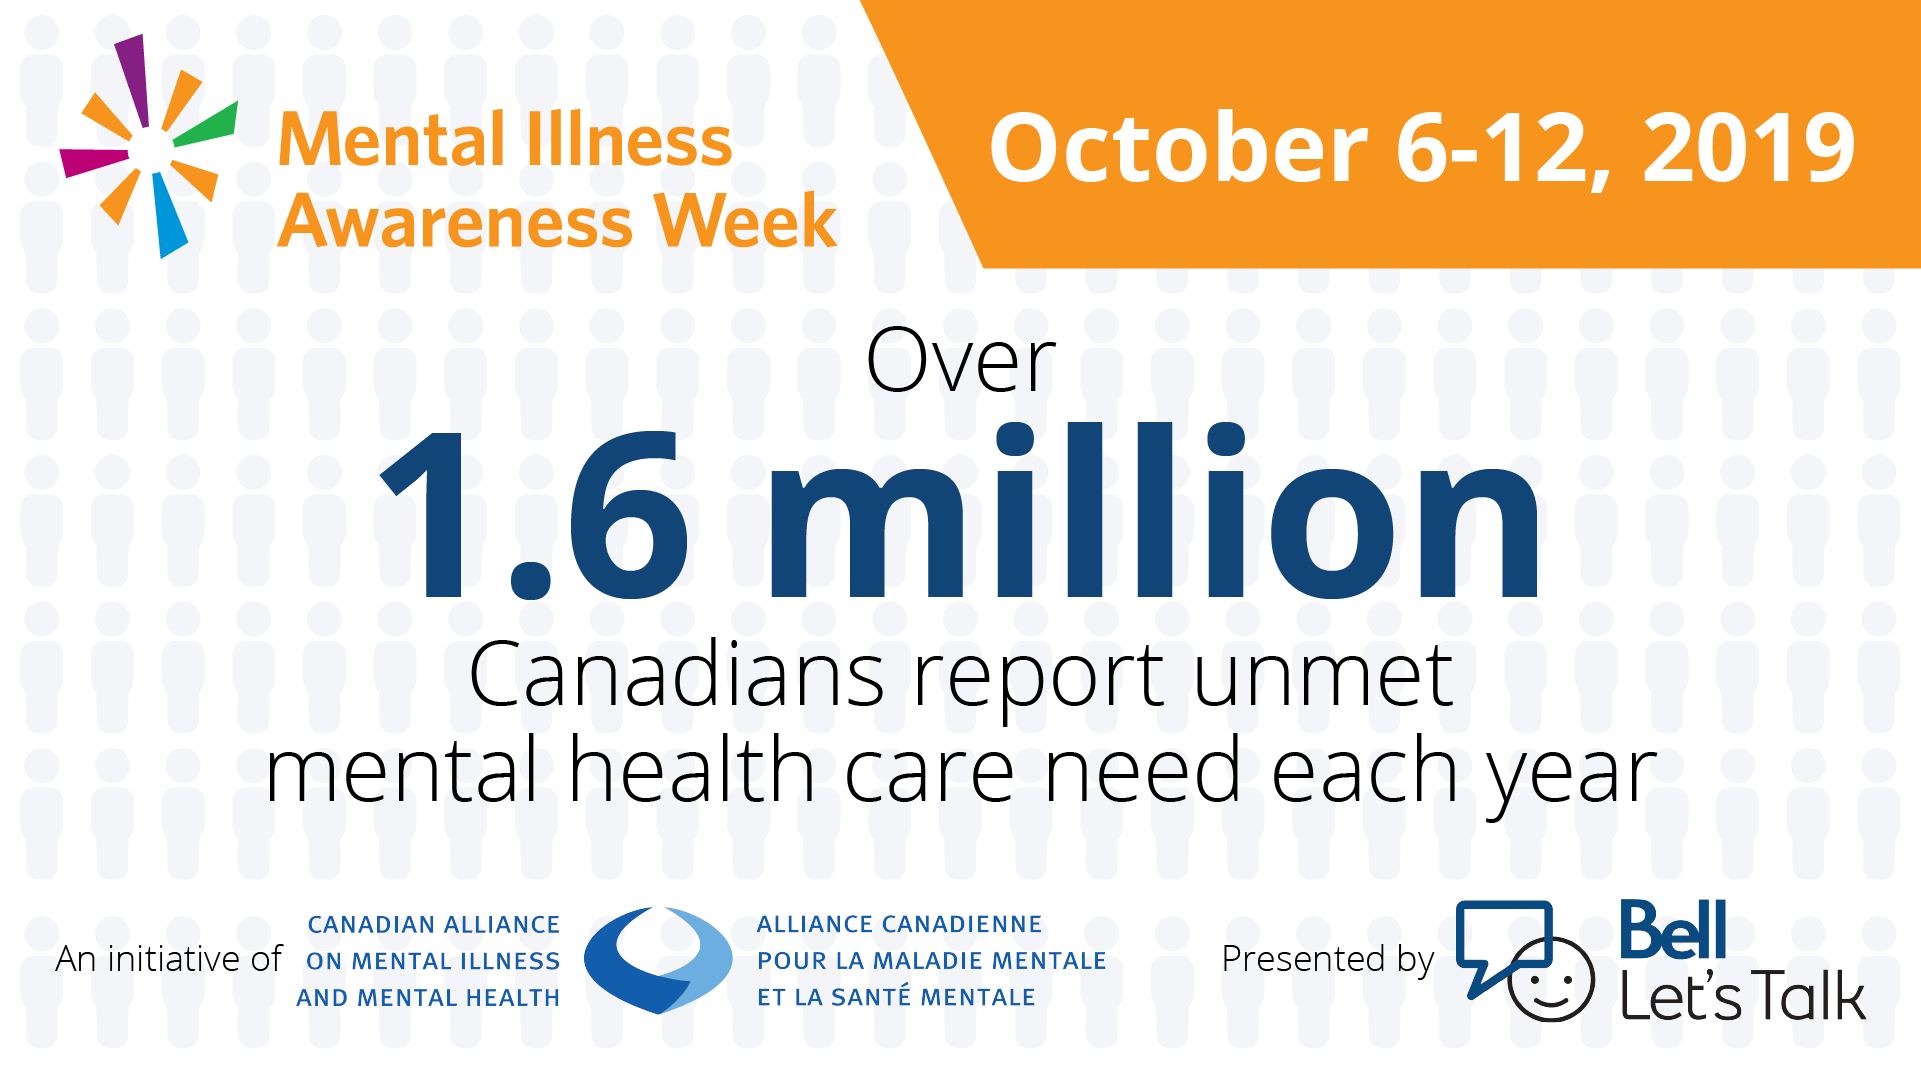 MIAW 2019 global mental health